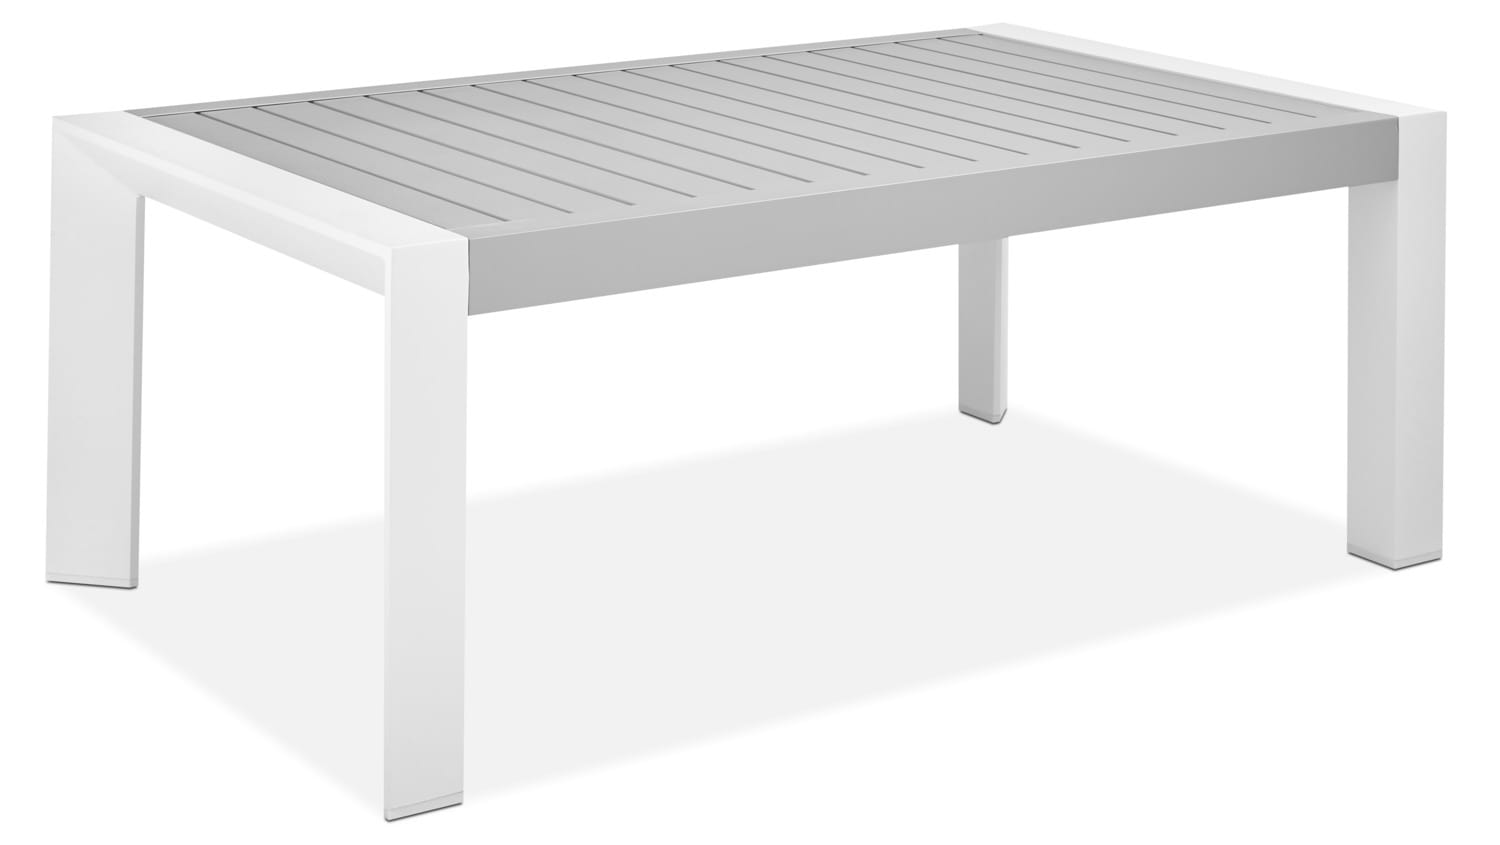 Biscayne Outdoor Coffee Table - Light Grey